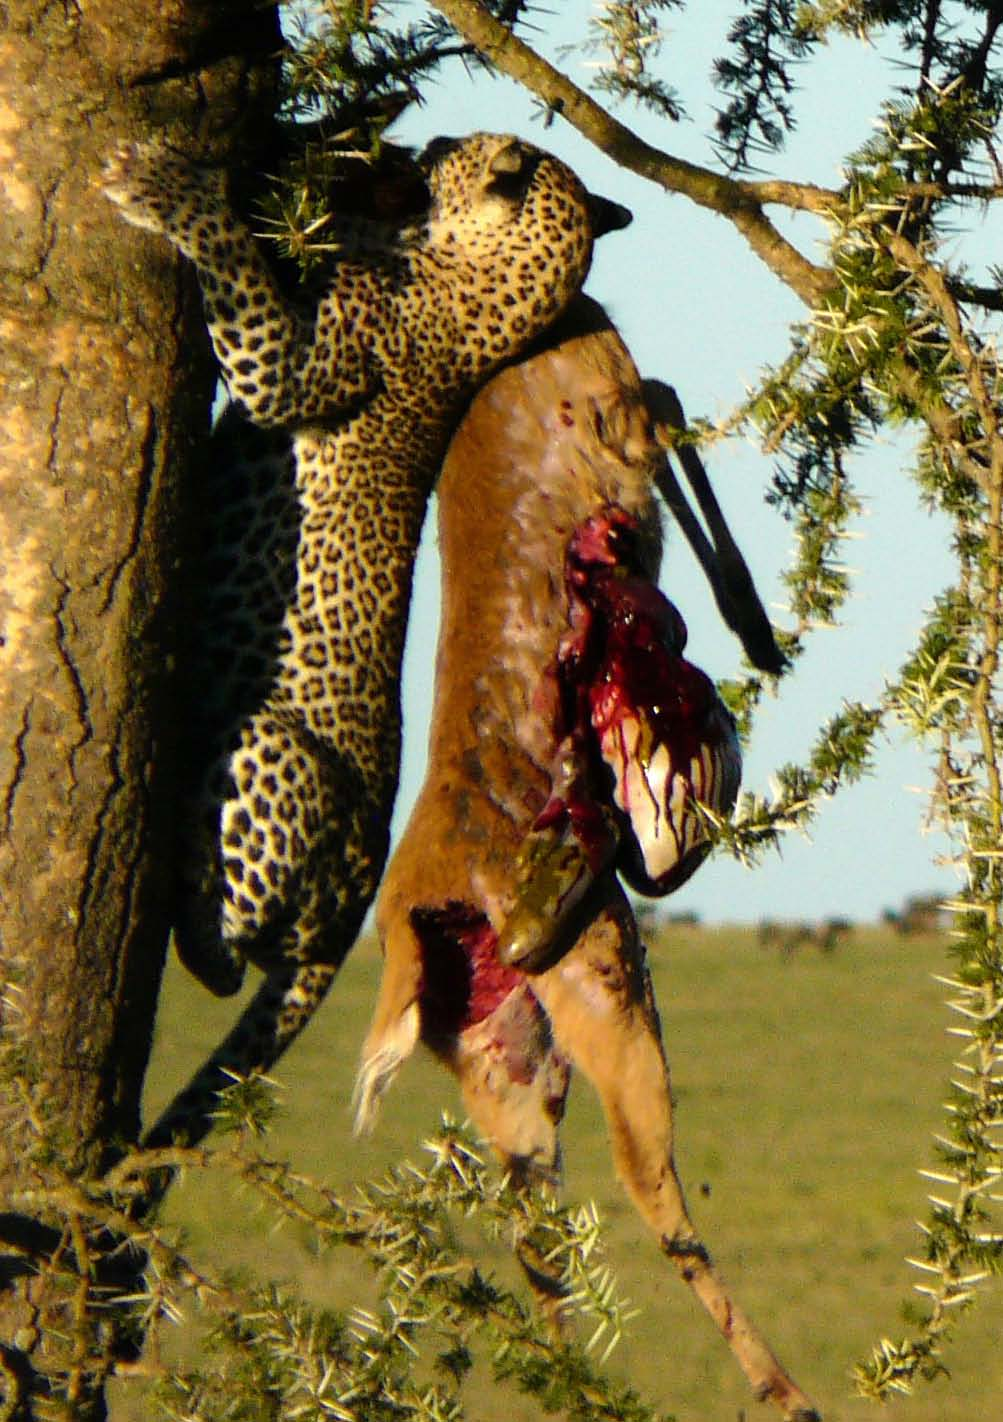 oregon hunting map with Leopard Hauls Reedbuk Up Acacia Tree Serengeti 2 on C groundDetails moreover First Dove Season Opener Approaches in addition Ten Criminals Caught On Google Camera Video in addition Best Hiking Gps 2015 also Fremont Lake.